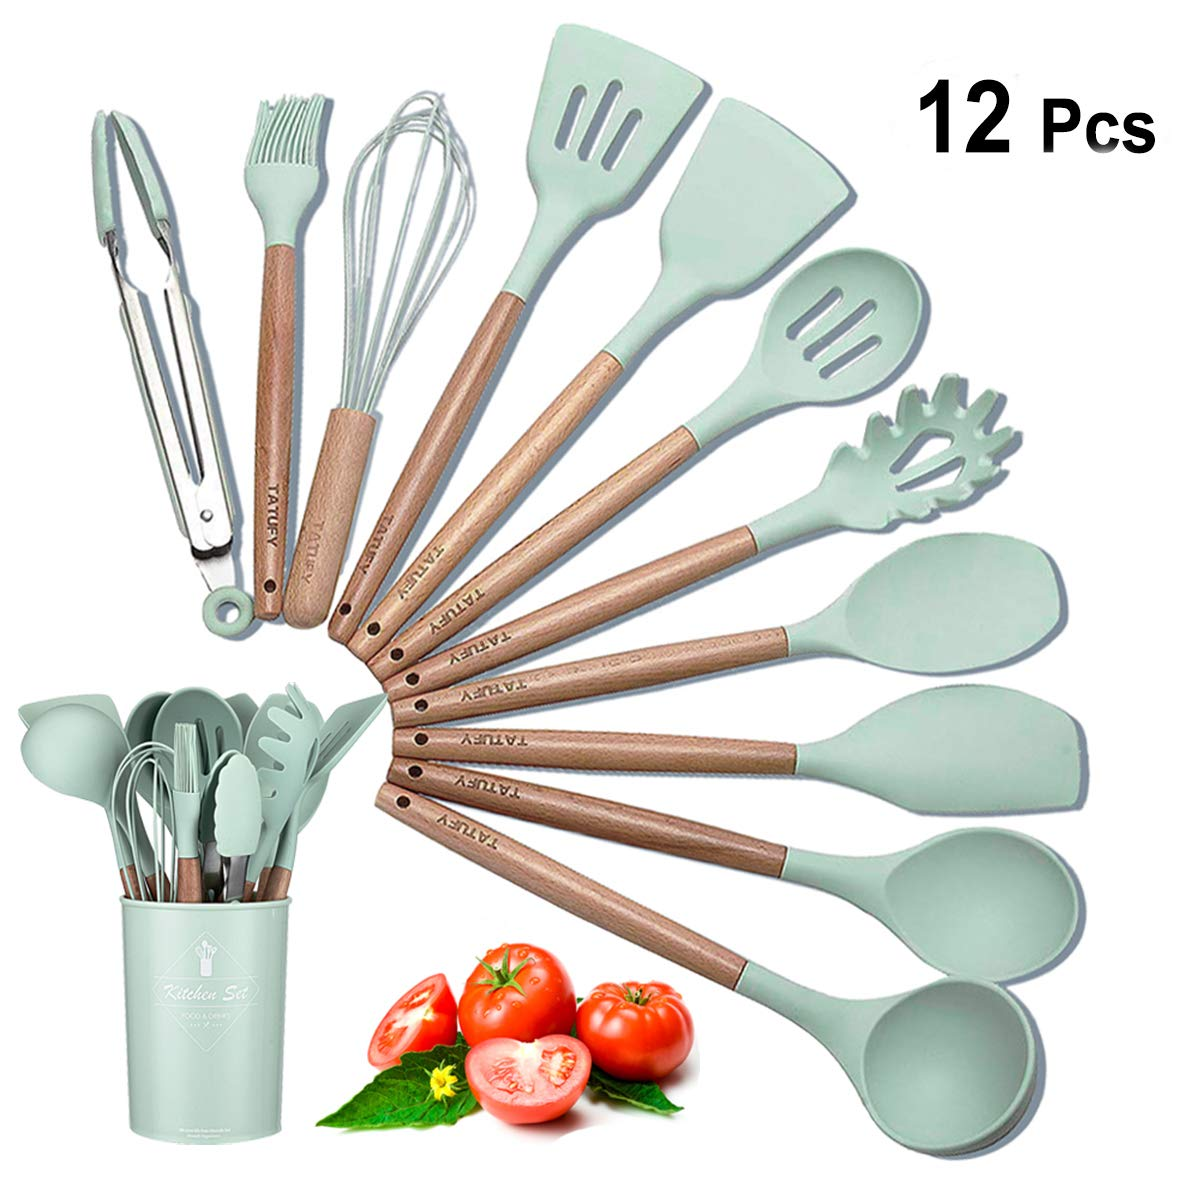 11 PC Silicone Cooking Utensils Kitchen Utensil Set with Holder,Tatufy Silicone And Acacia Wooden Utensils for Nonstick Cookware Non Toxic Turner Tongs Spatula Spoon Set Great Kitchen Tools for Gift